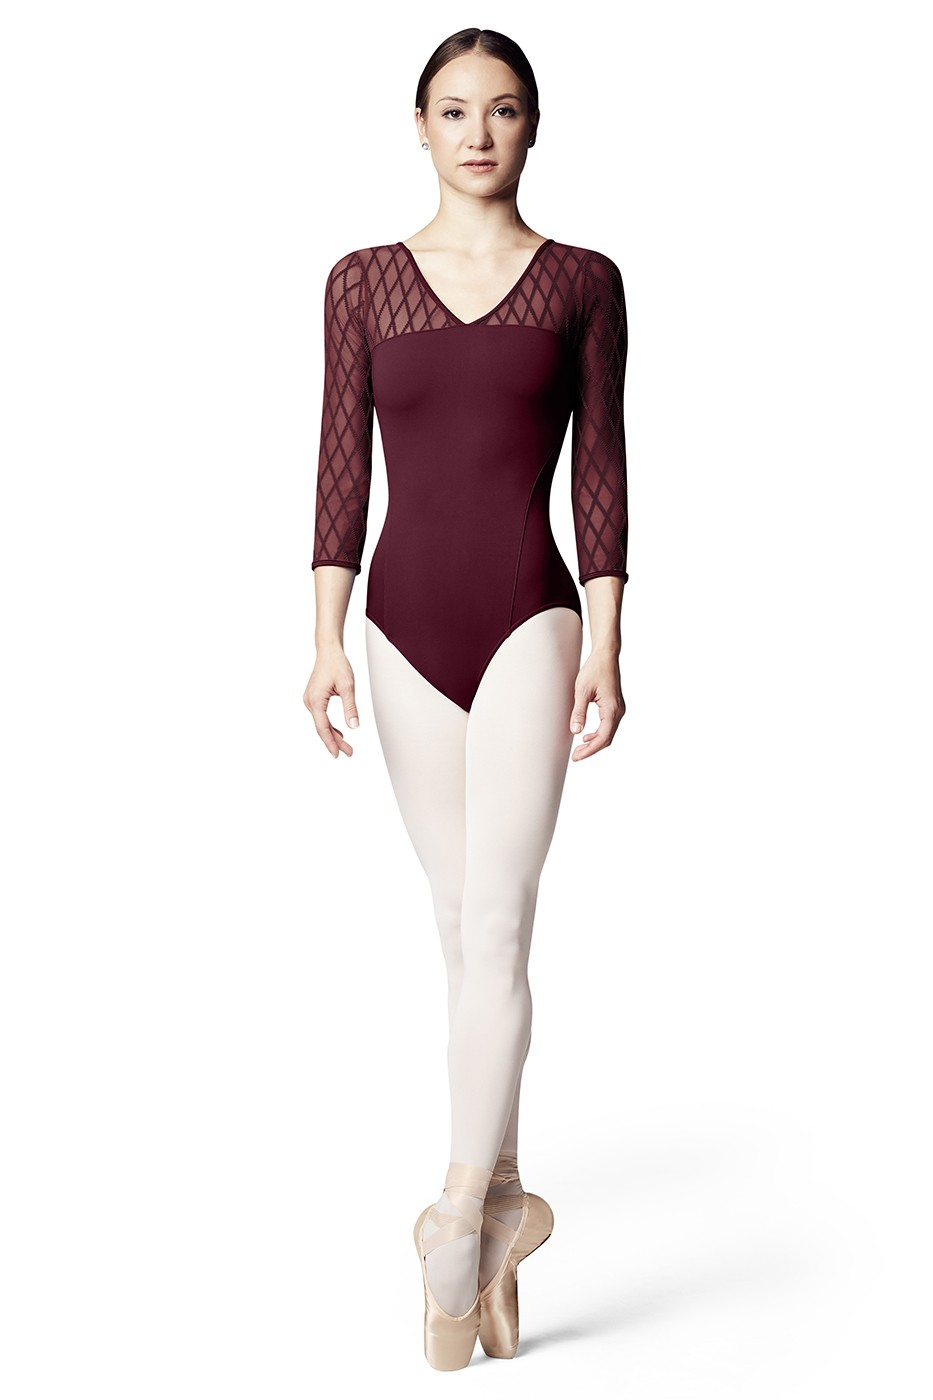 Lila Women's Dance Leotards